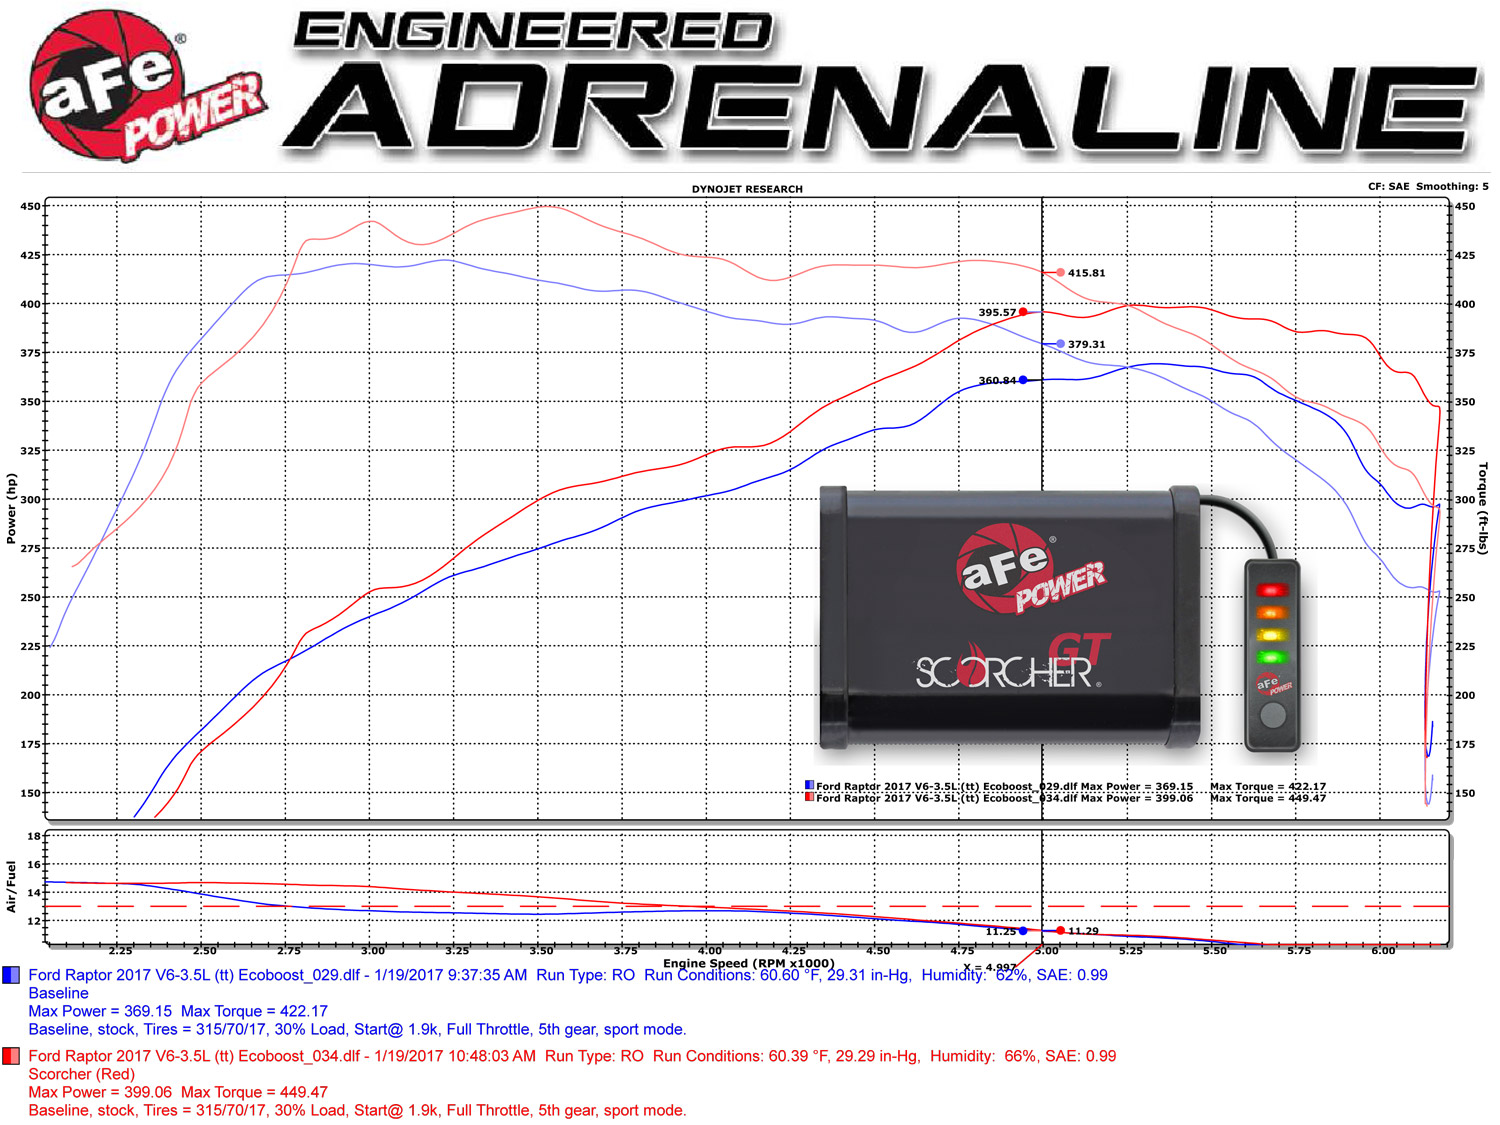 afe-power-scorcher-gt-increase-turbo-boost-for-2017-2018-raptor-3.5l-svt-77-43023-dyno-numbers-testing.jpg